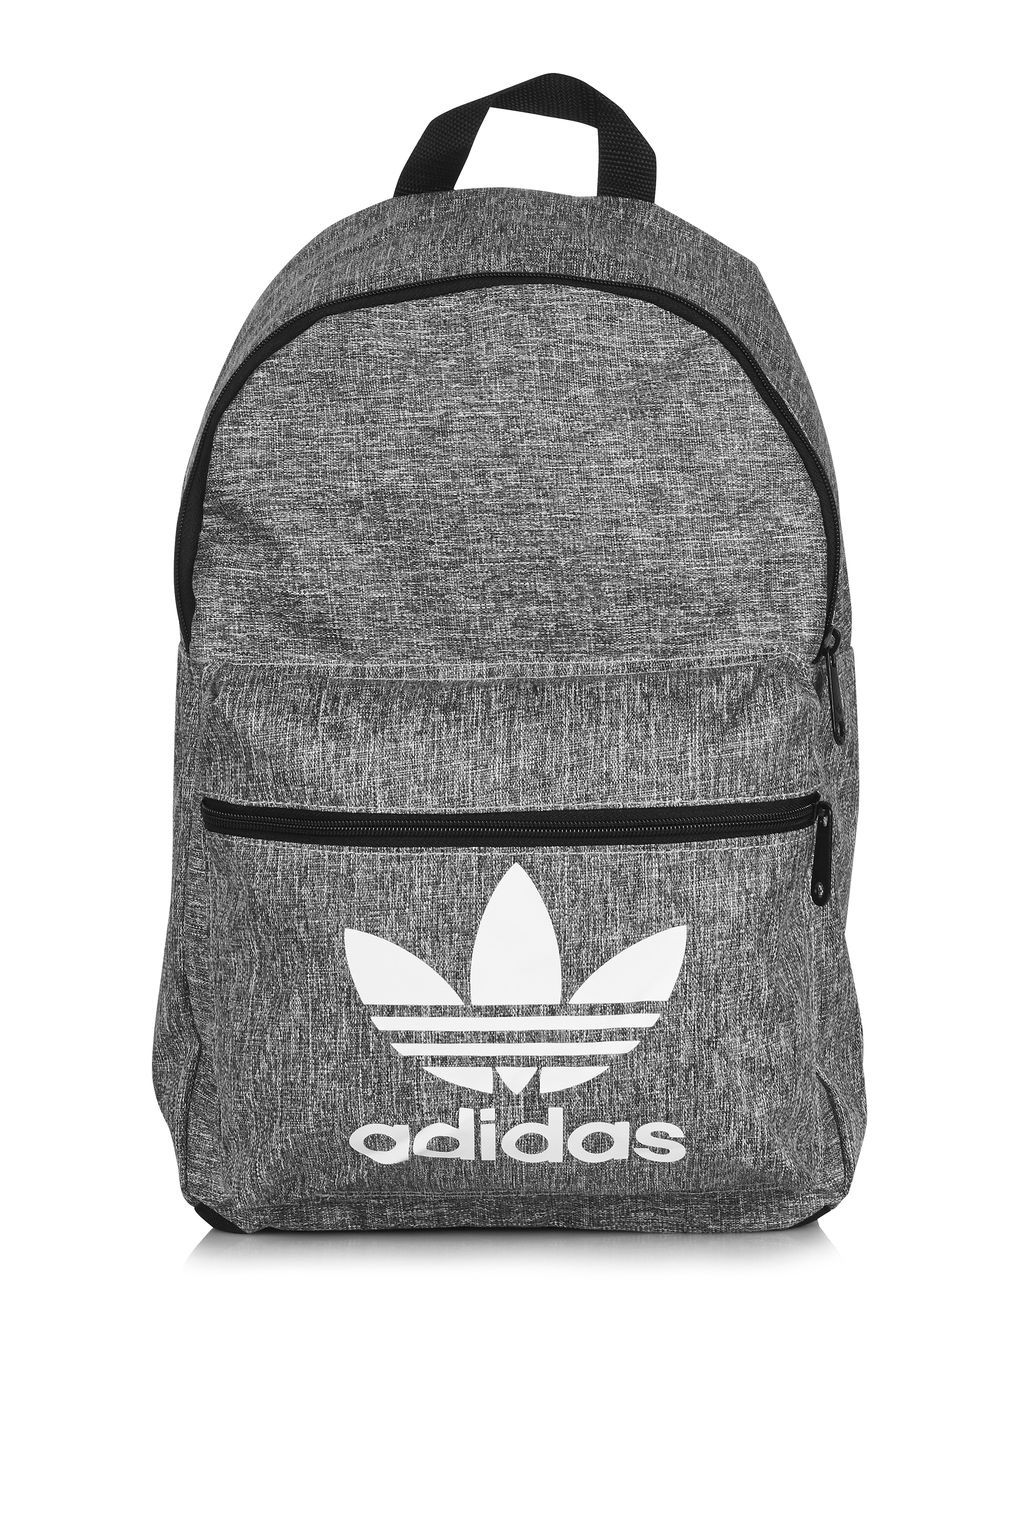 16c0fa138a Grey Backpack by Adidas Originals in 2019